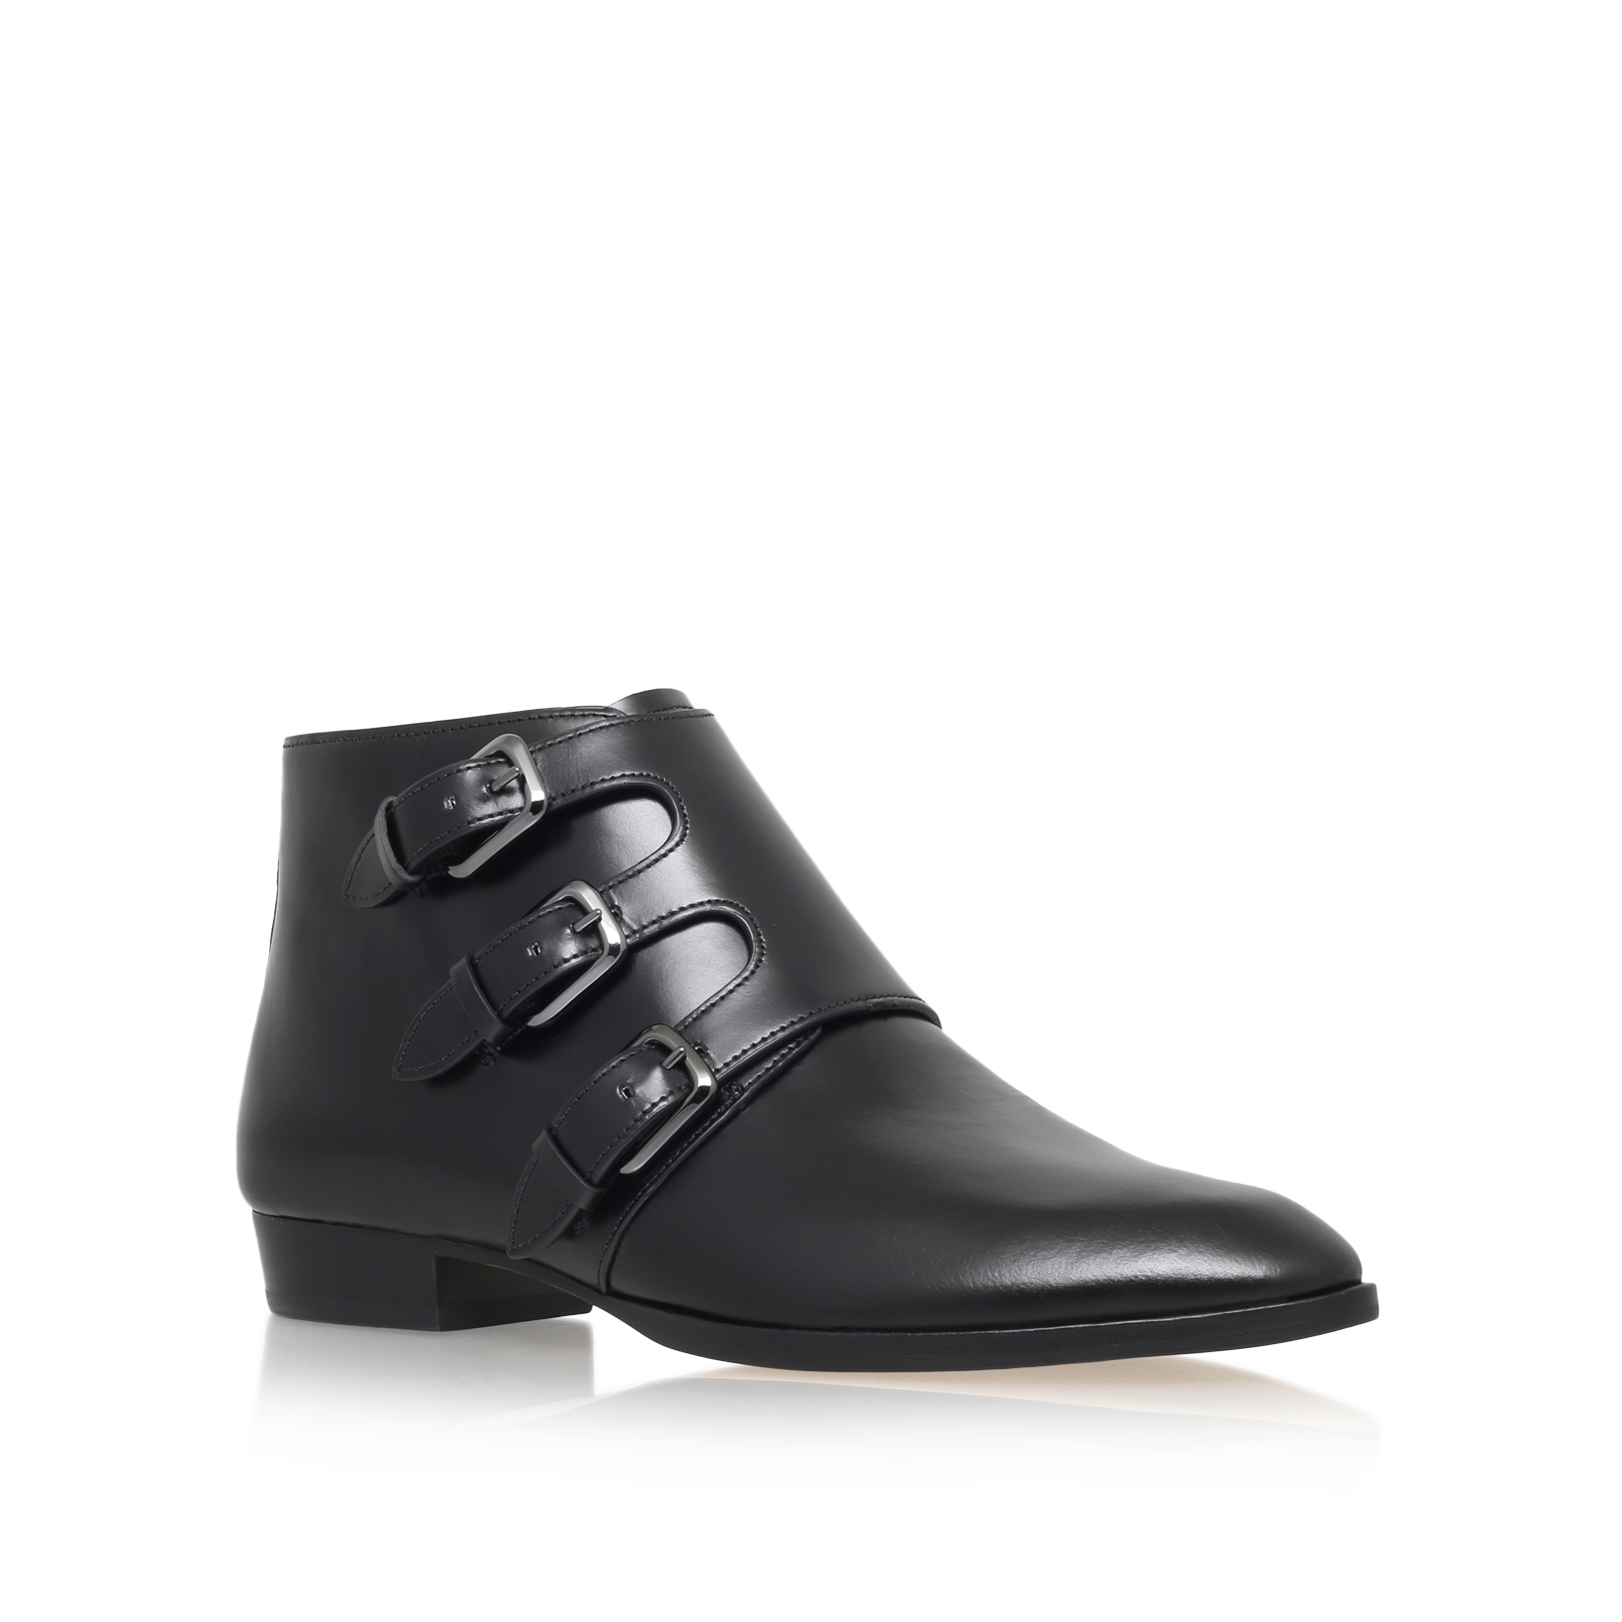 PRUDENCE FLAT BOOTIE